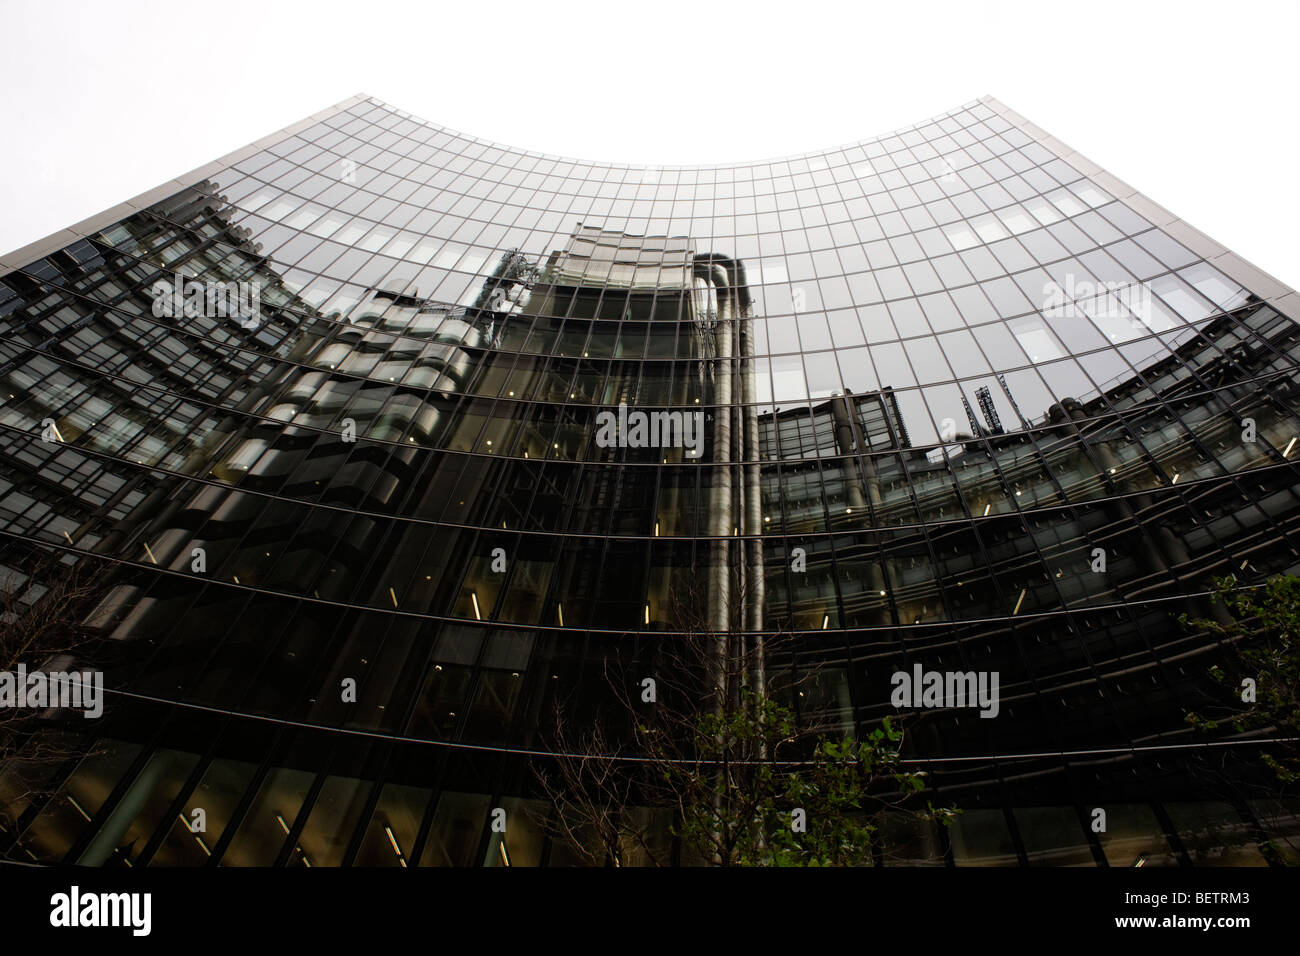 The Willis Building occupied by the risk management company, Willis Group. City of London. Britain. UK - Stock Image